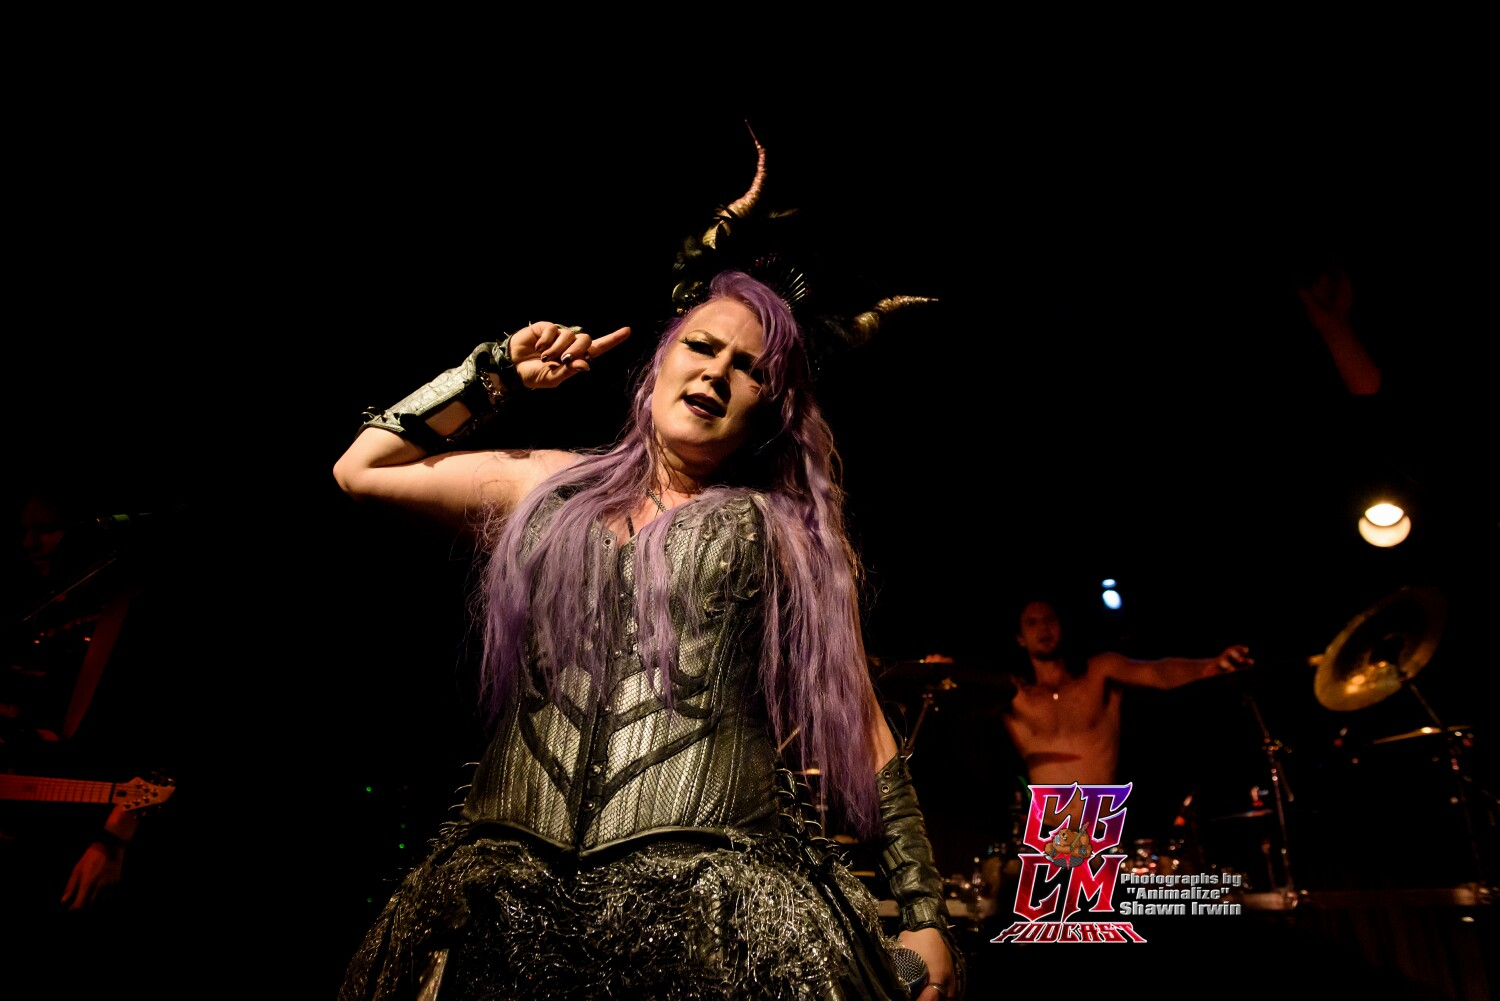 Battle Beast Photos CGCM LOGO Shawn Irwin (27 Of 34)